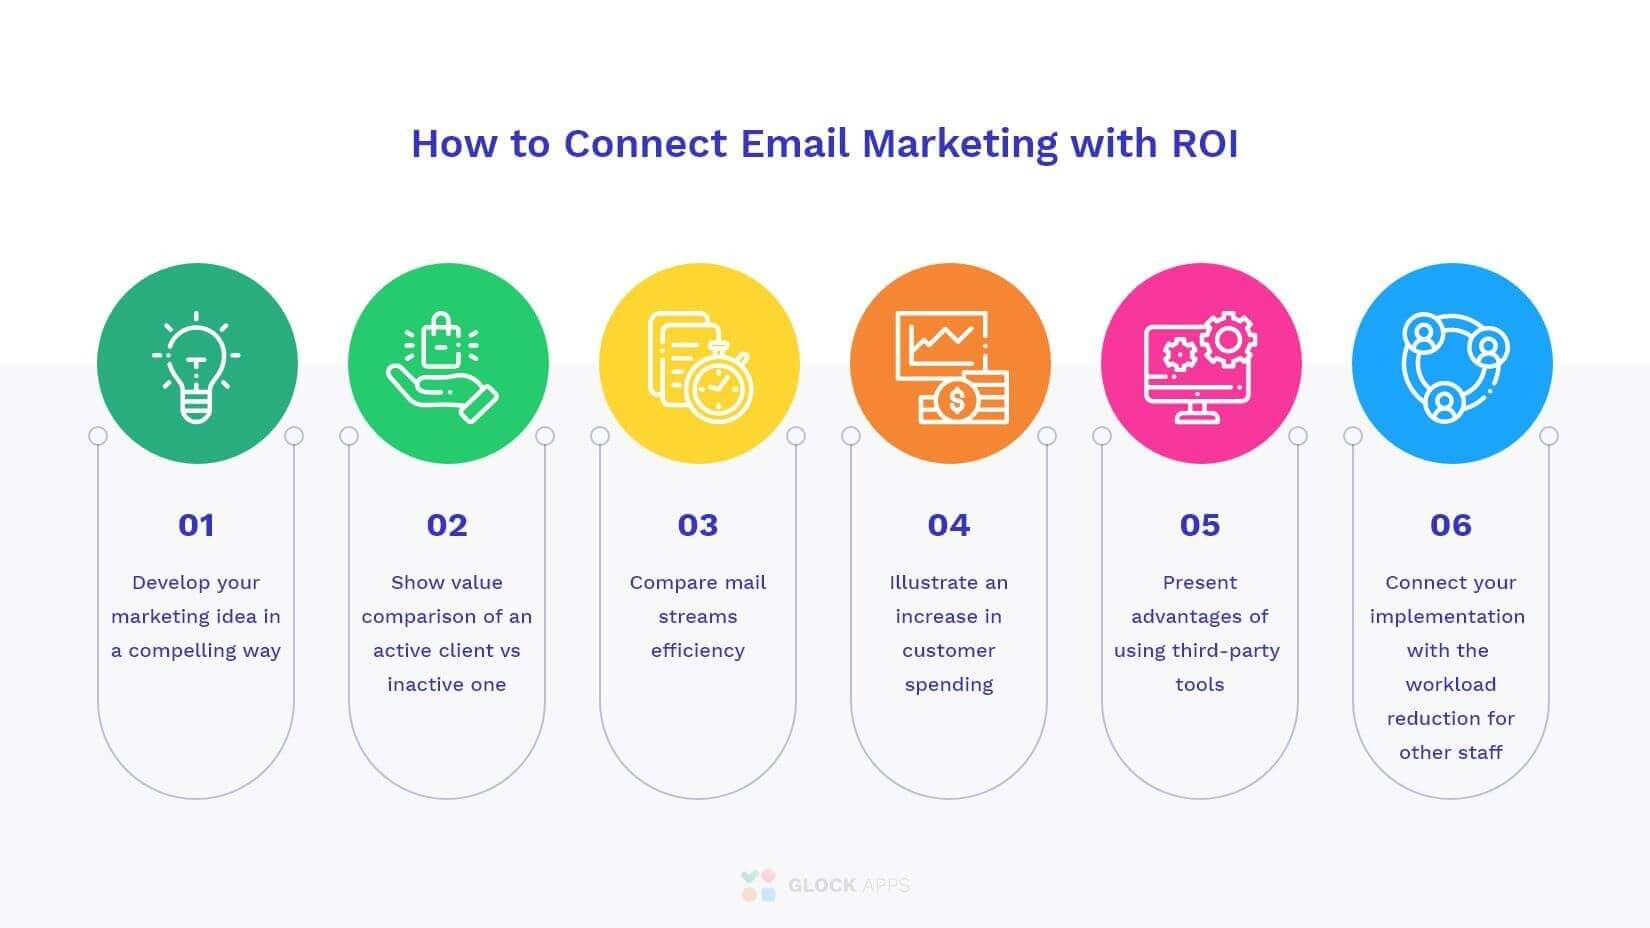 List of options that show connection between email marketing and ROI